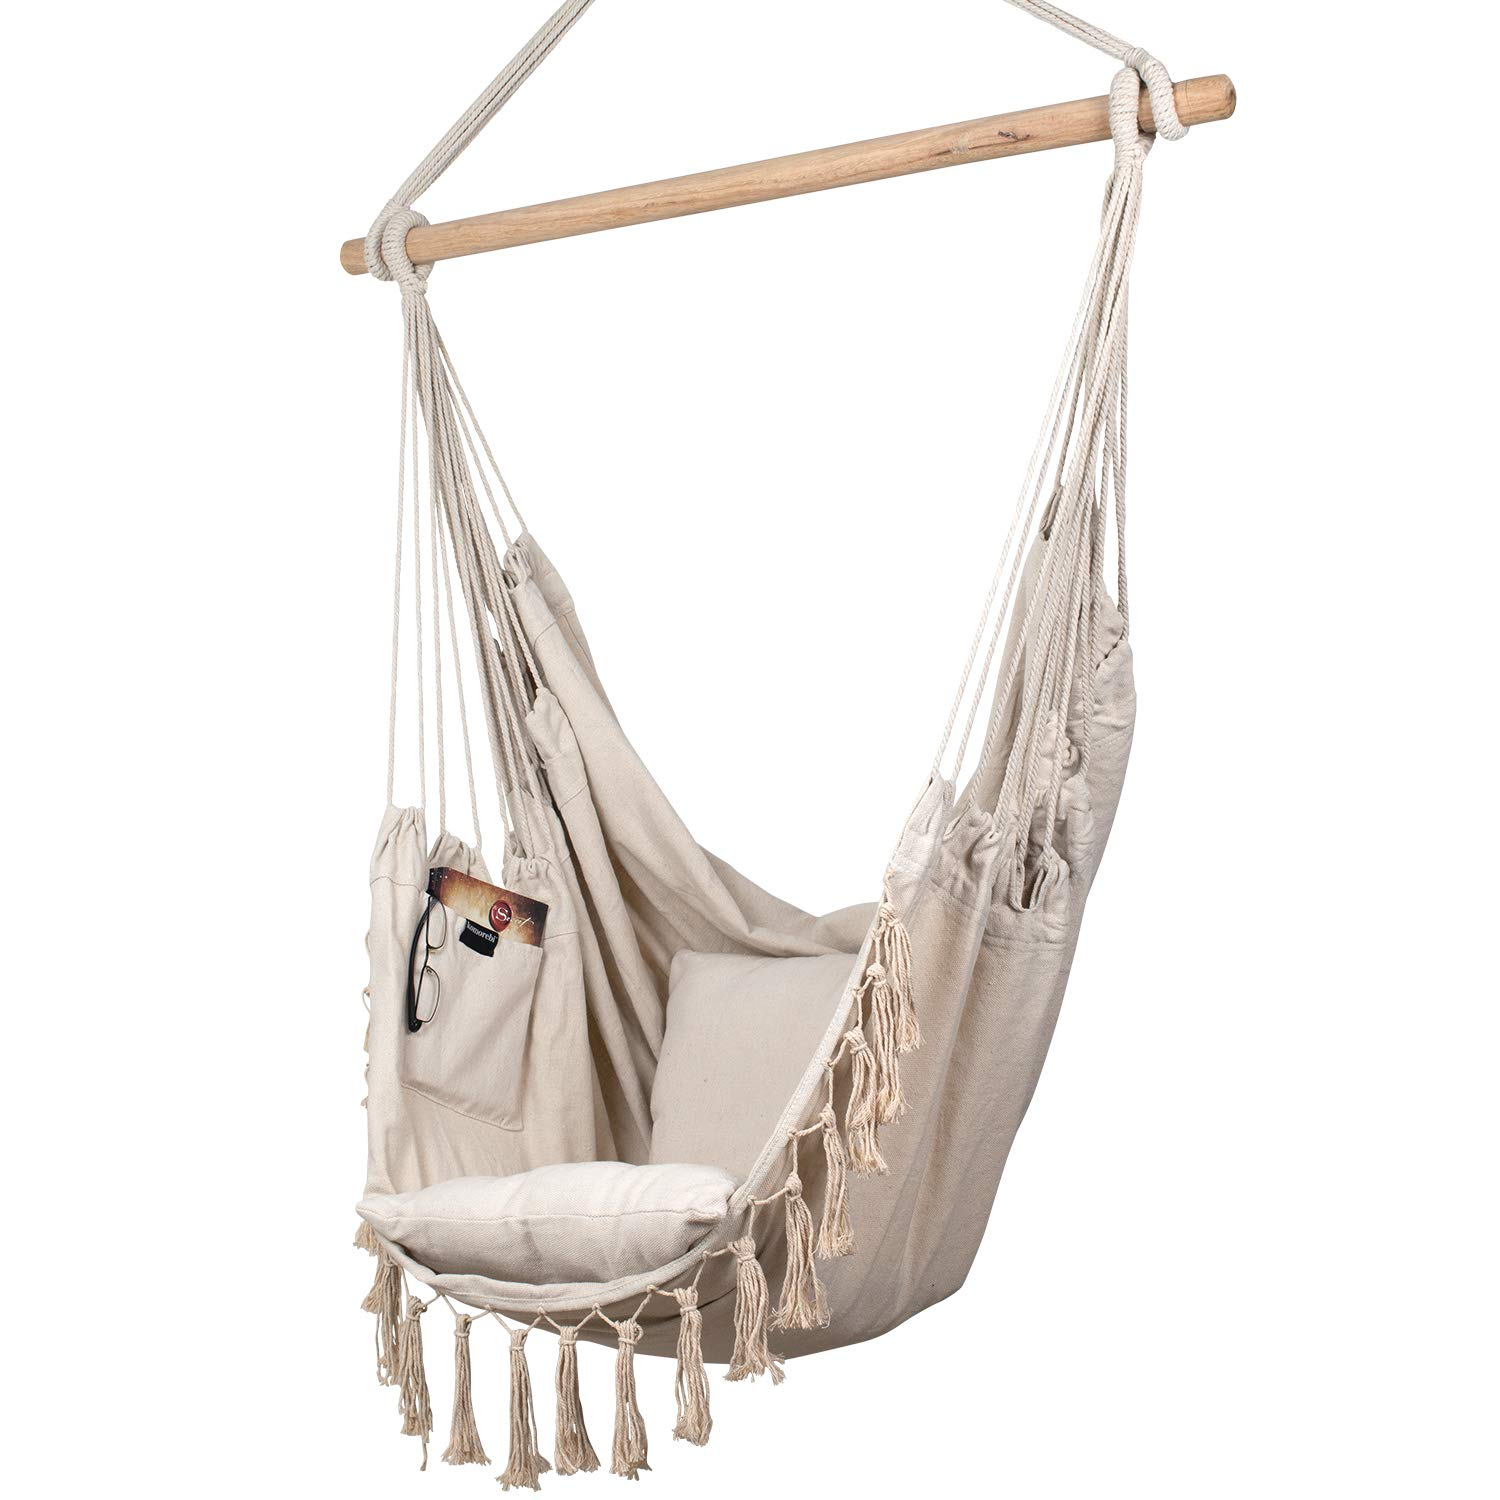 Komorebi Hammock Chair Hanging Rope Swing Seat for Indoor Outdoor Soft Durable Cotton Canvas 2 Cushions Included Large Reading Chair with Pocket for Bedroom, Patio, Porch Ivory